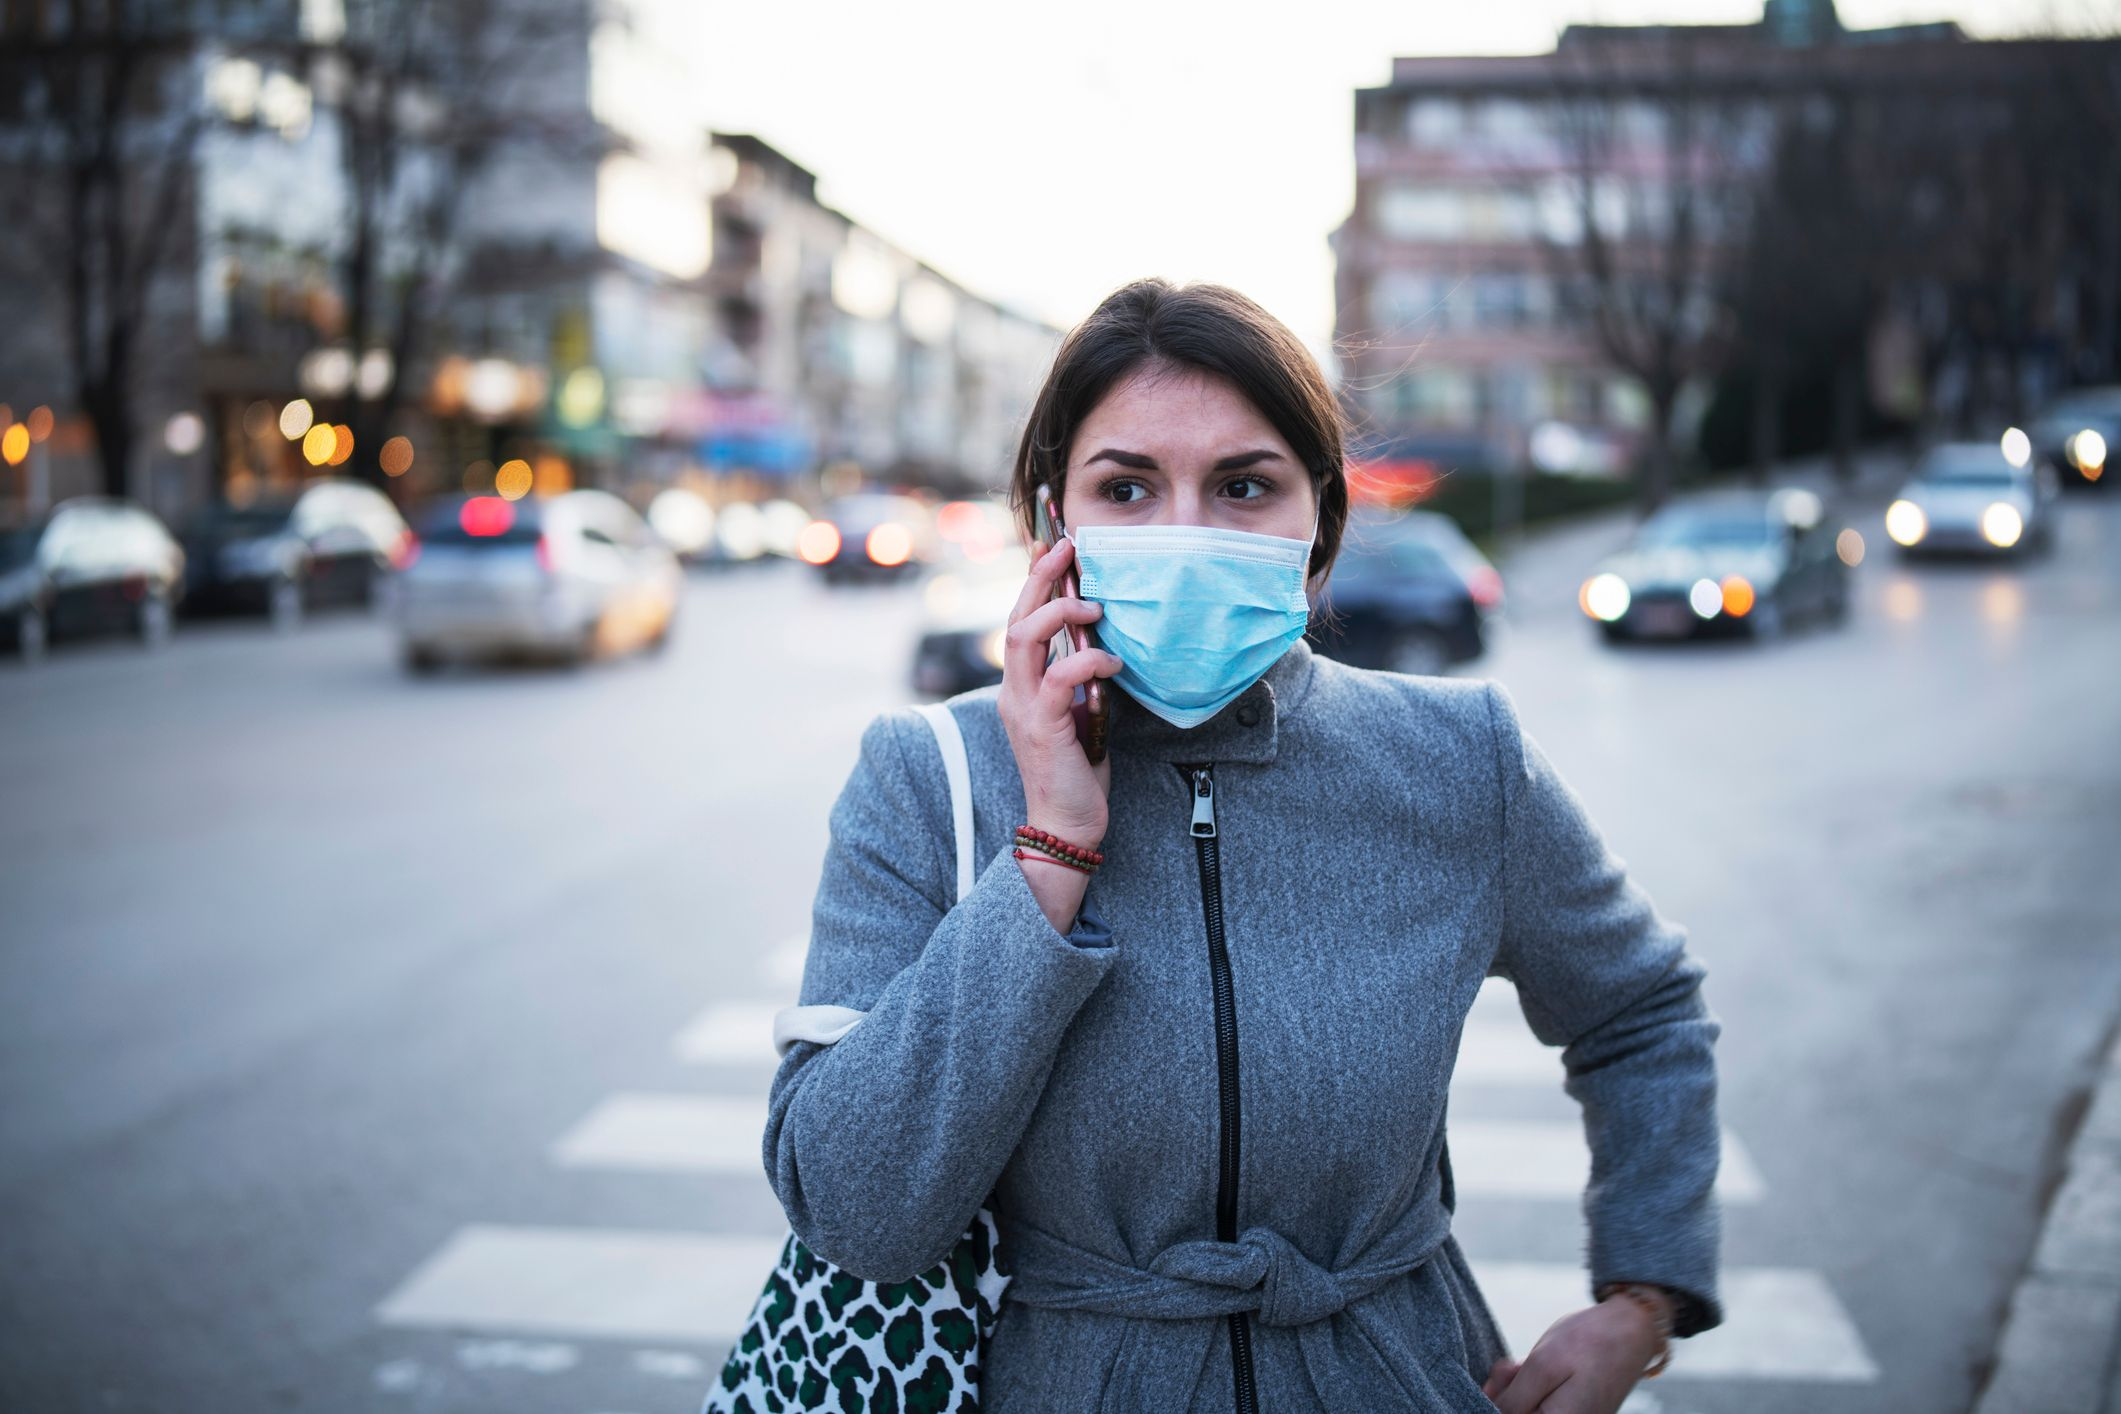 Lady with medical mask on